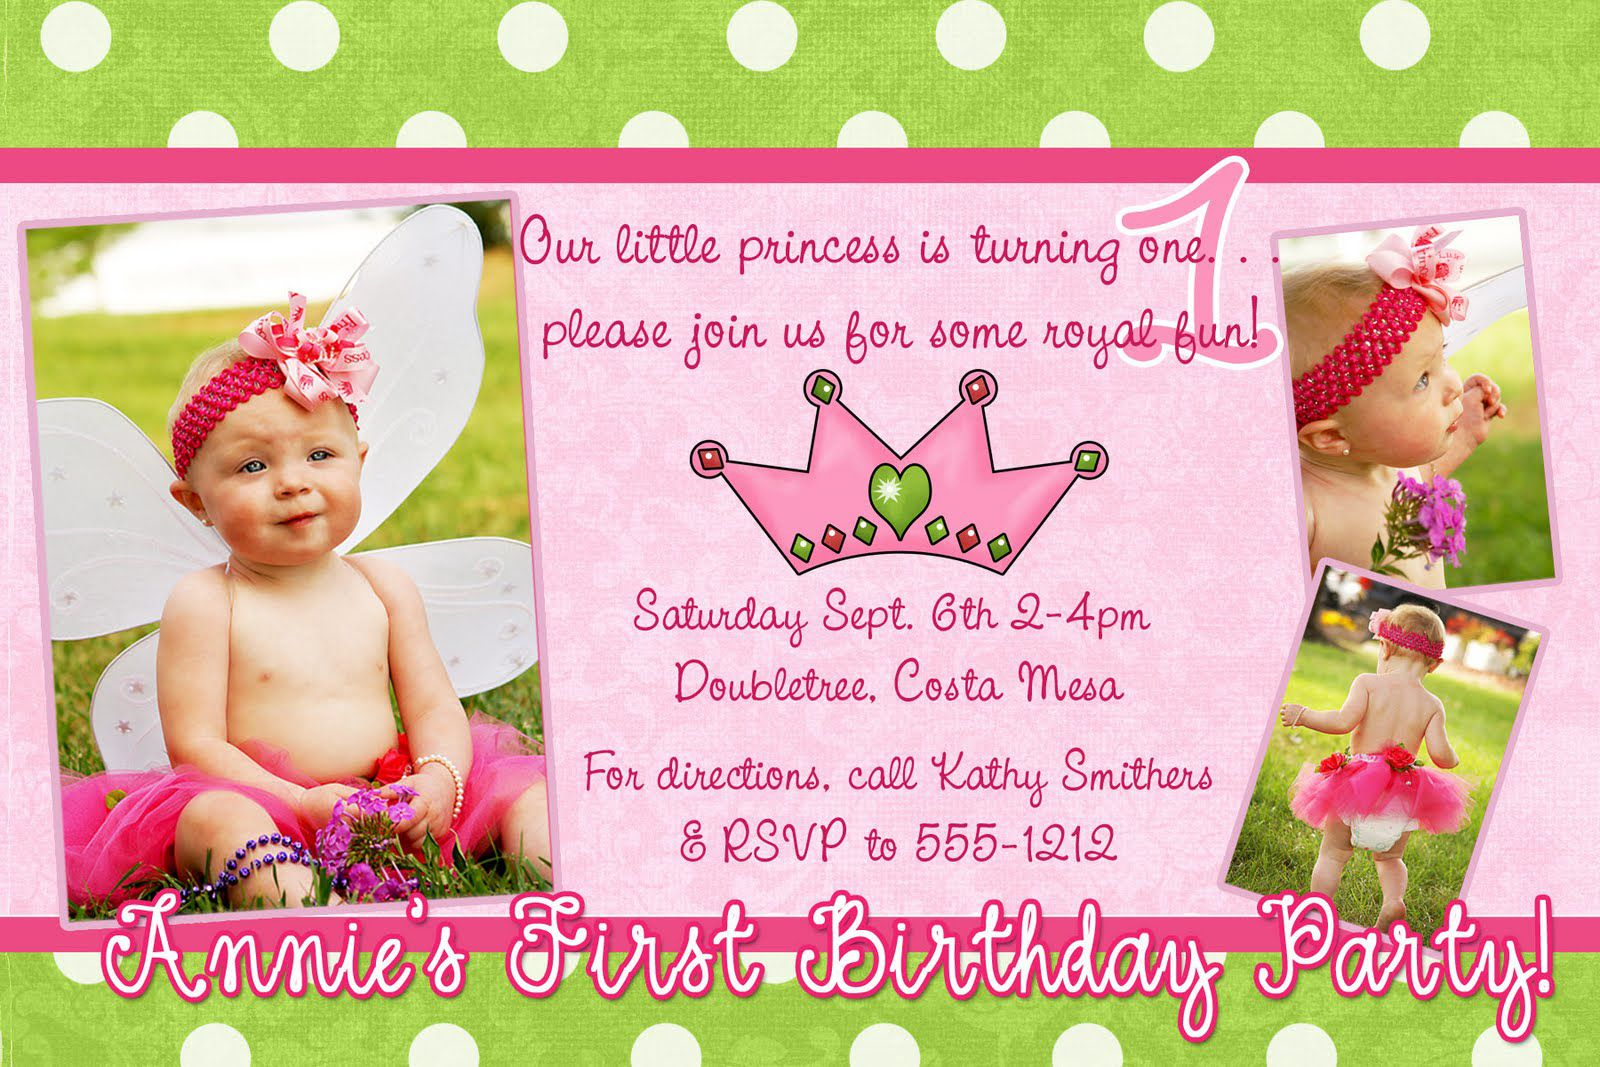 21 kids birthday invitation wording that we can make sample girl birthday invitation wording stopboris Image collections